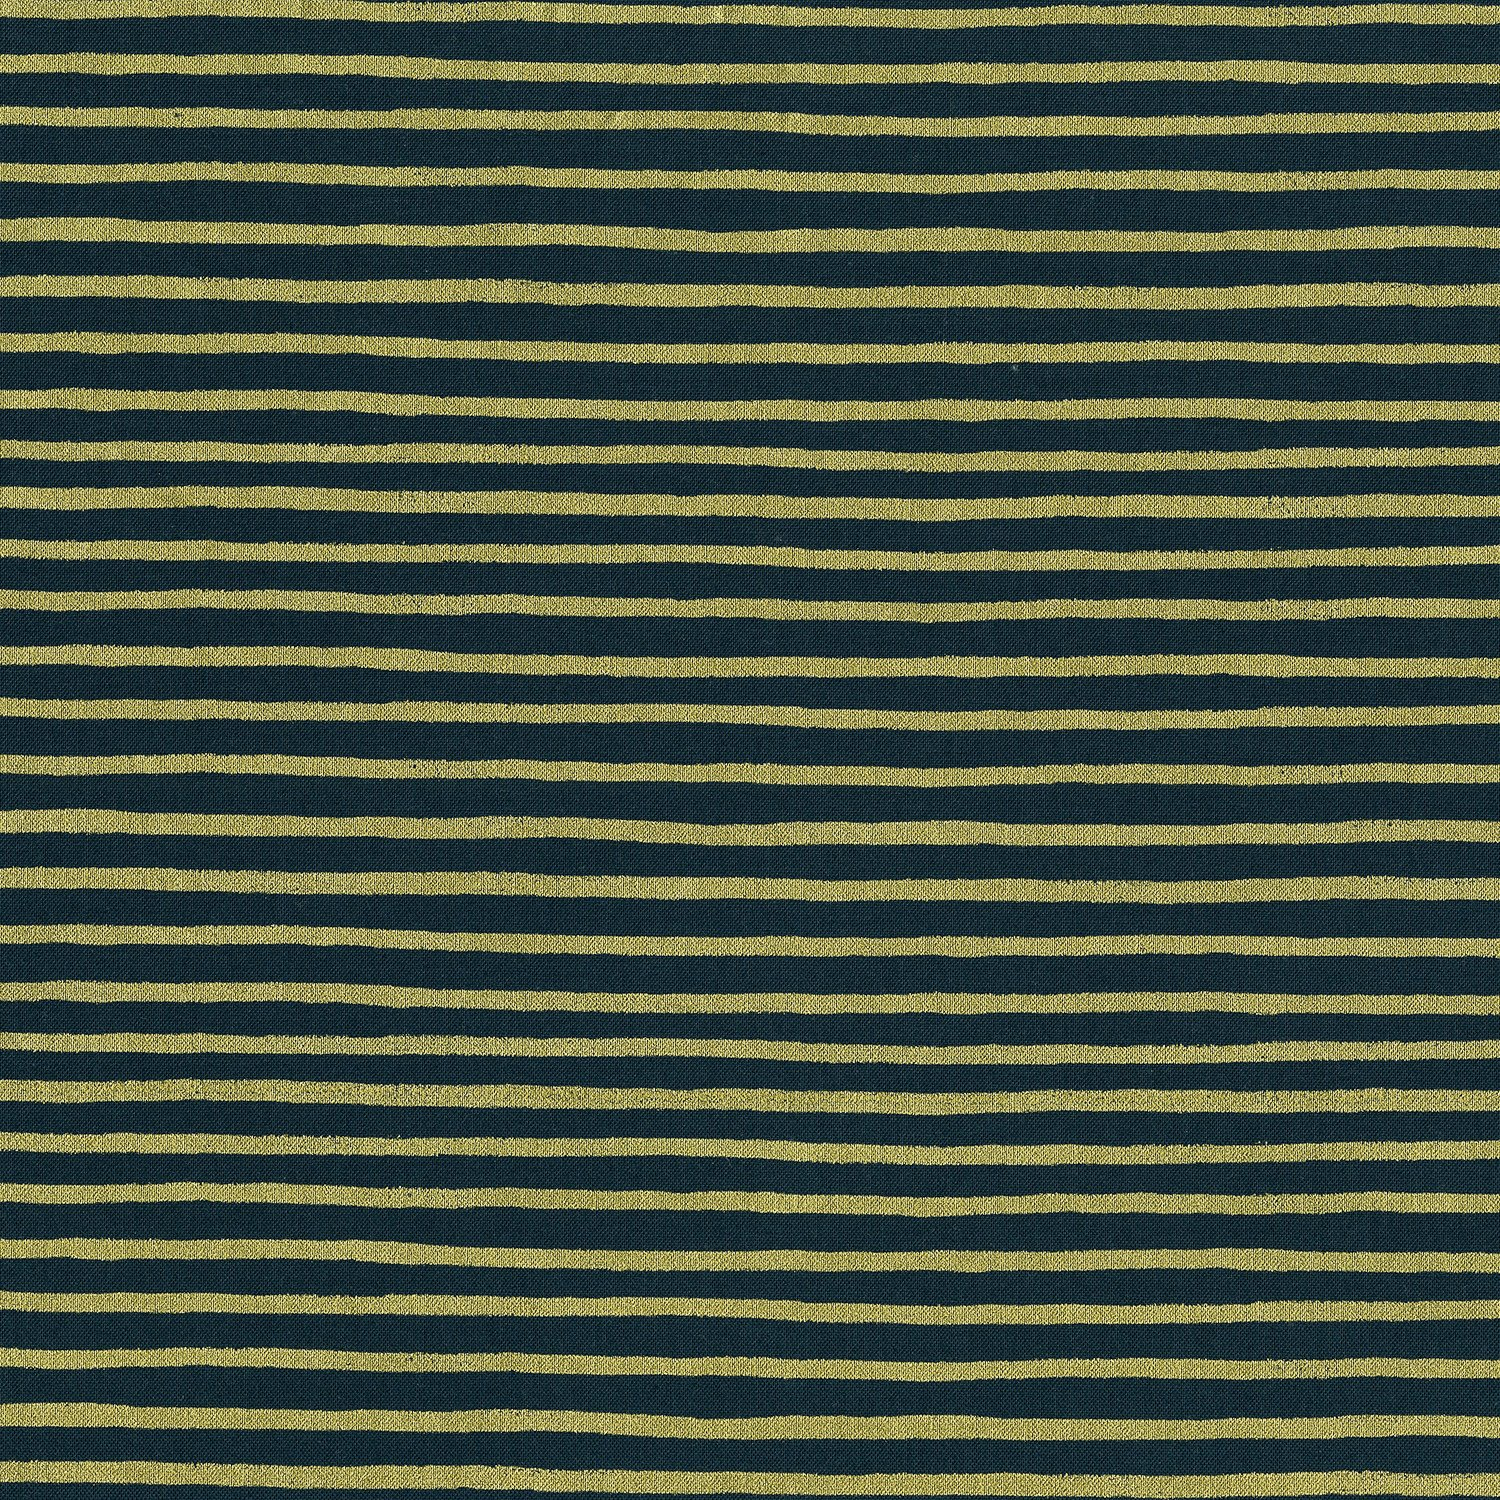 Remnant - Rifle Paper Co English Garden Painted Stripes Cotton - Navy Metallic - 1 2/3 yard